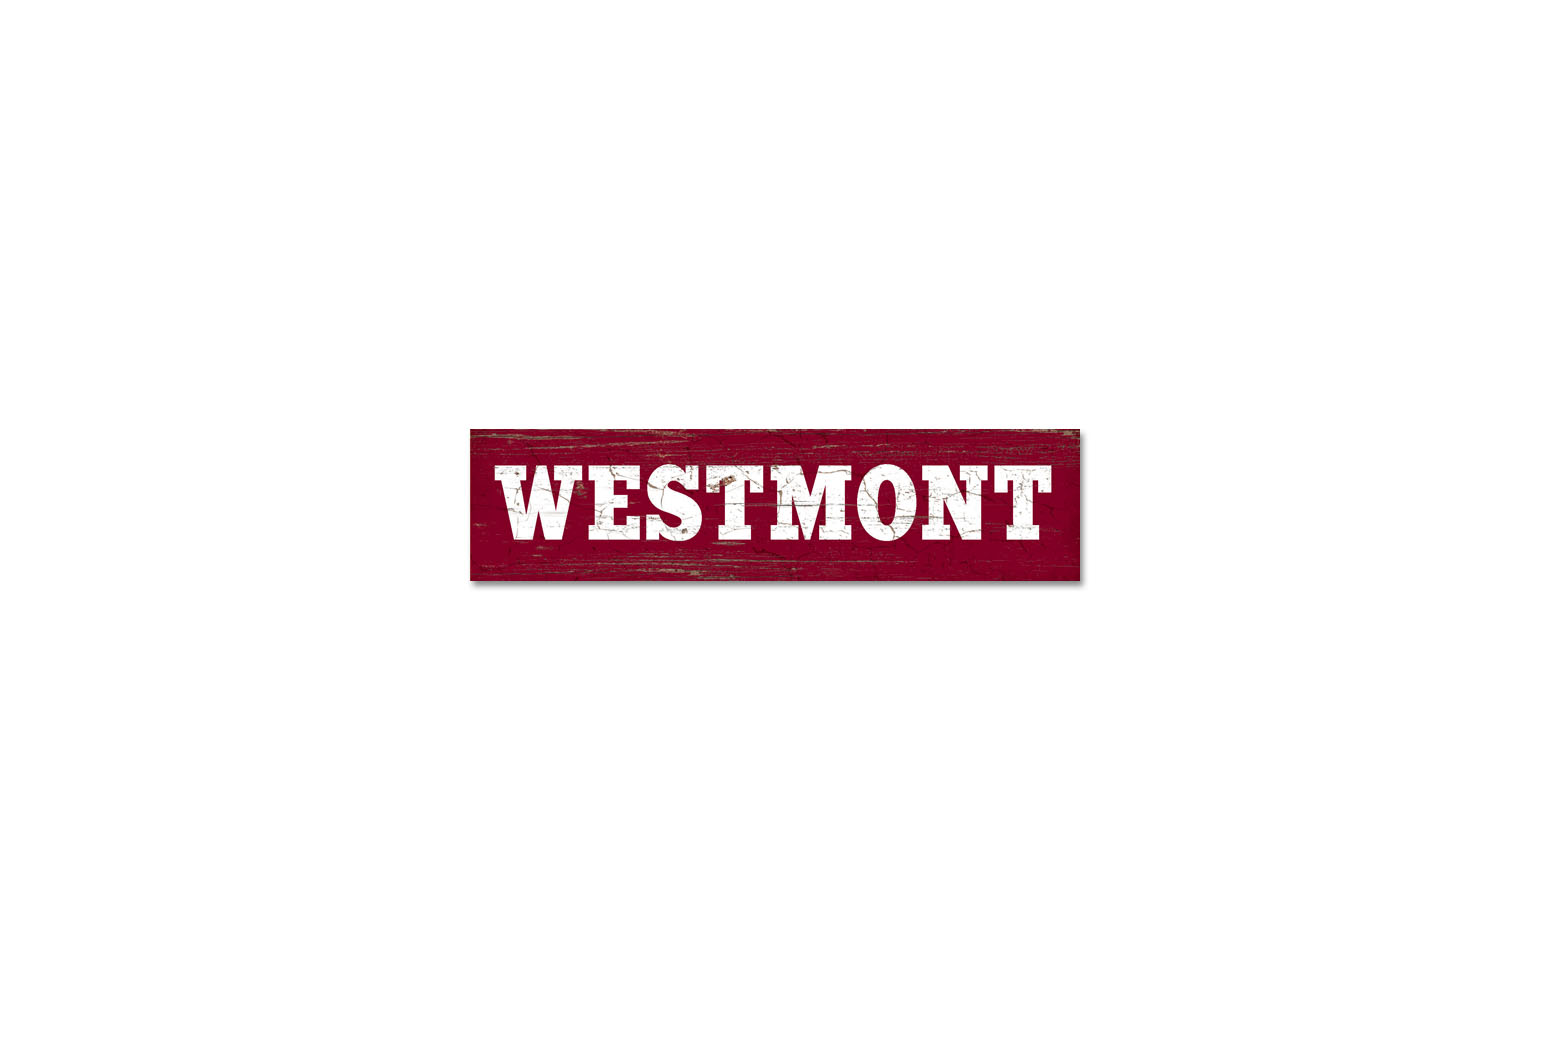 Image for the Legacy Westmont Plank Stick Magnet product